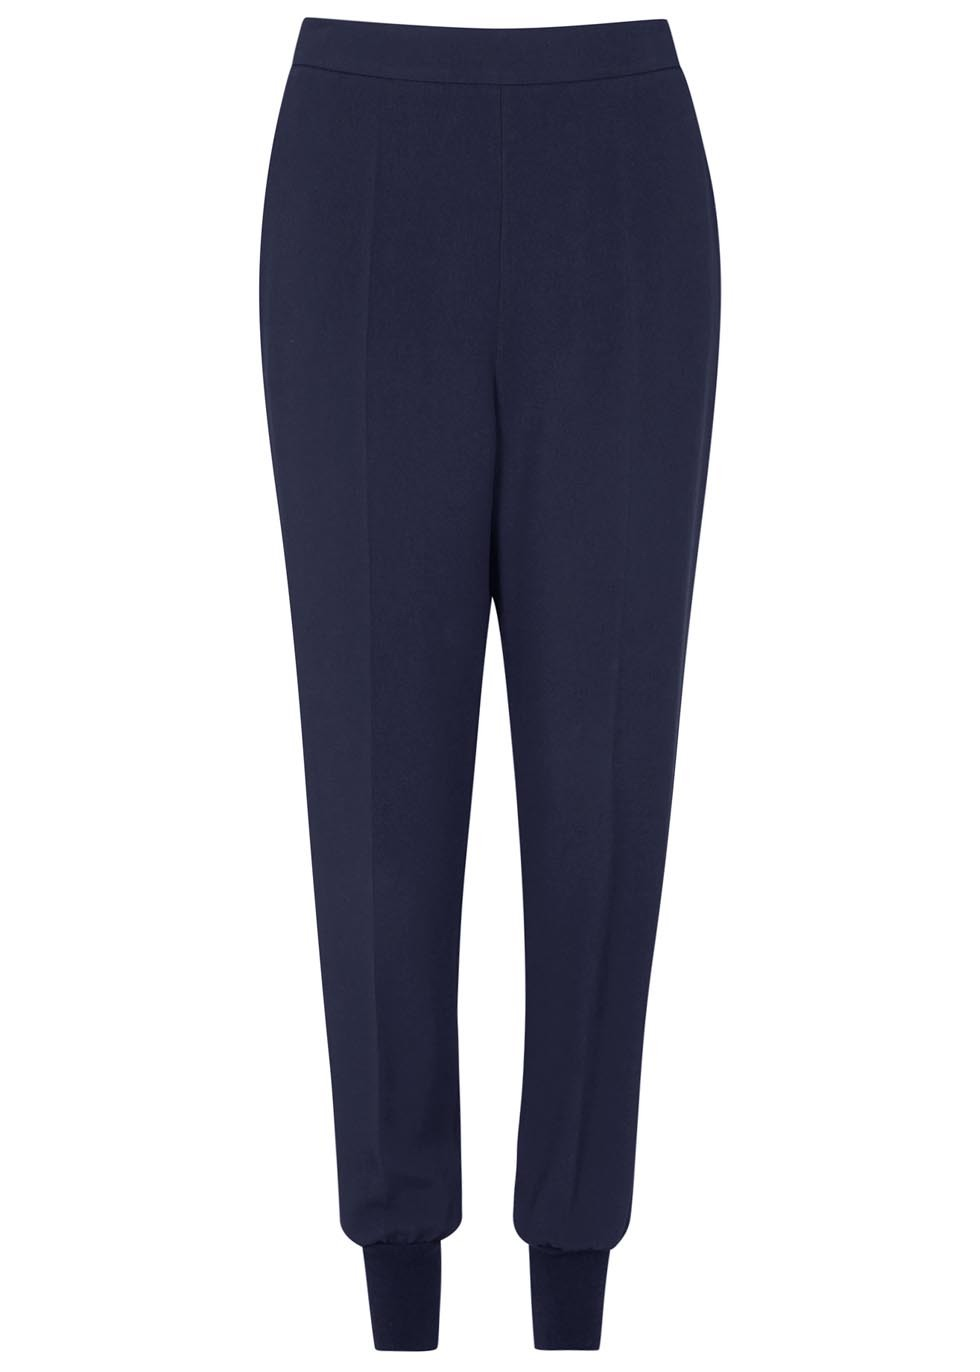 Julia Navy Crepe Jogging Trousers - length: standard; pattern: plain; style: tracksuit pants; waist: high rise; predominant colour: navy; occasions: casual, creative work; fibres: polyester/polyamide - mix; waist detail: narrow waistband; texture group: crepes; fit: baggy; pattern type: fabric; season: a/w 2015